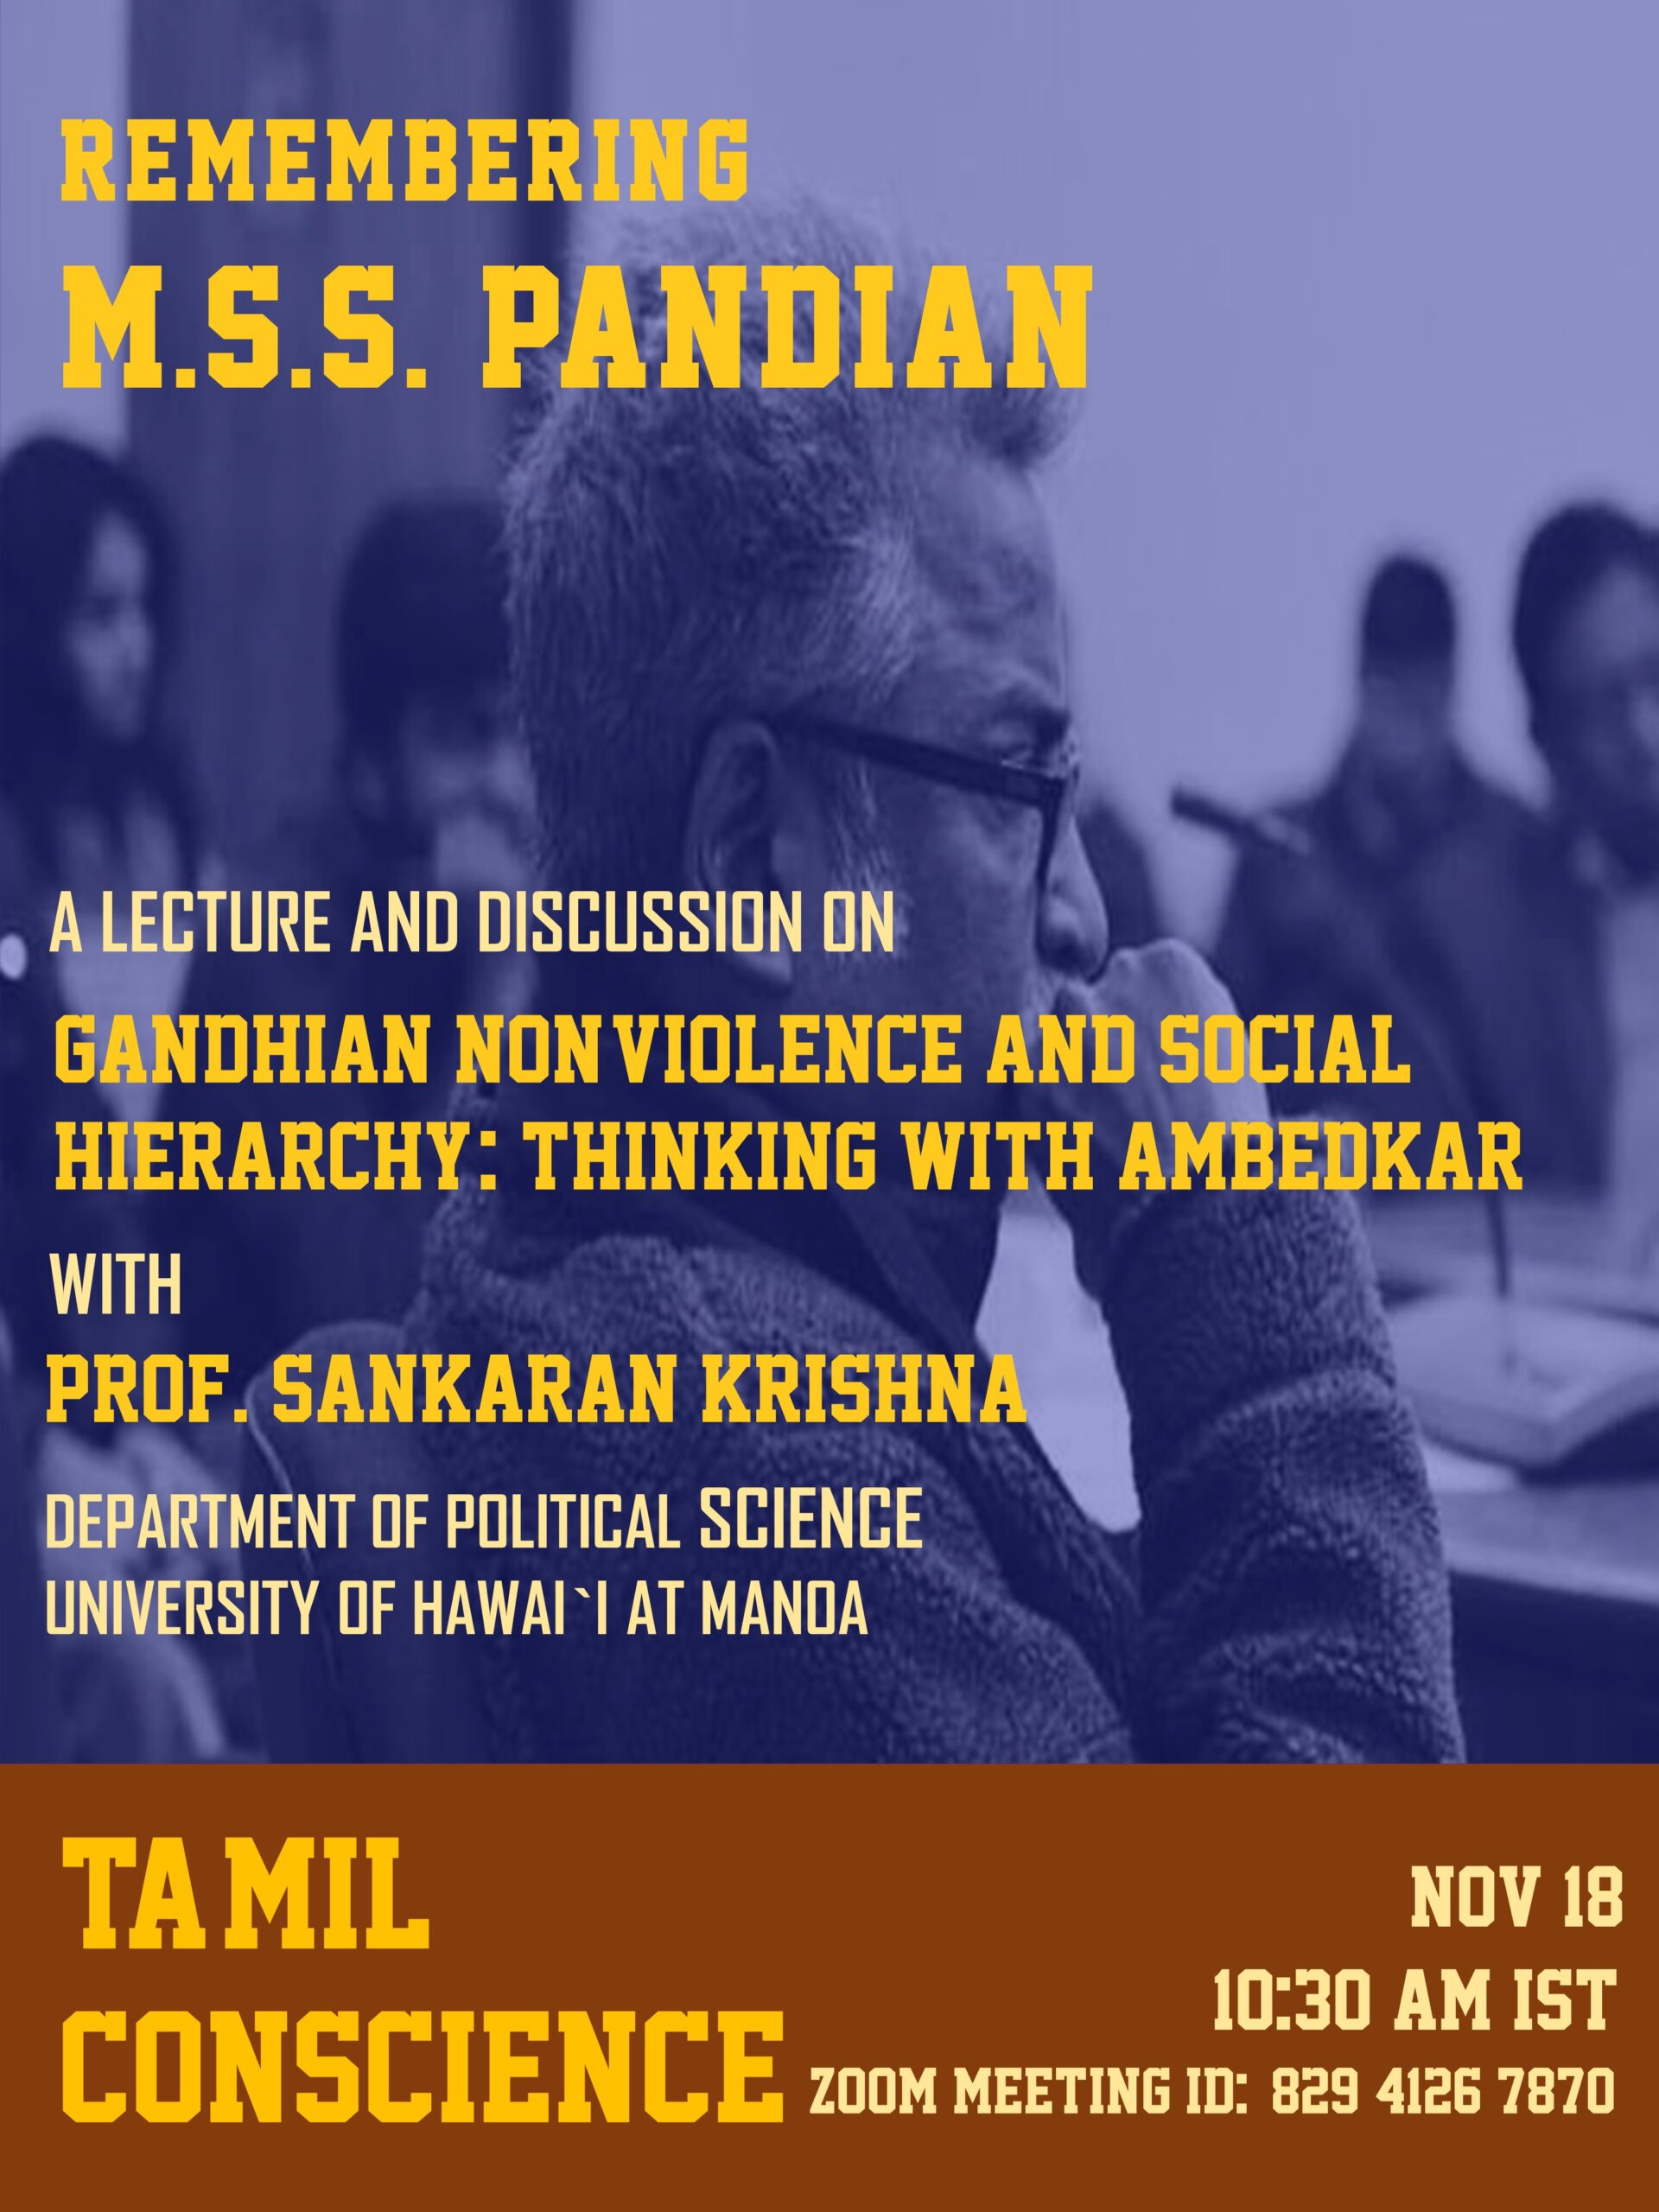 A lecture and discussion in remembrance of  Prof. M.S.S. Pandian delivered by Prof. Sankaran Krishna